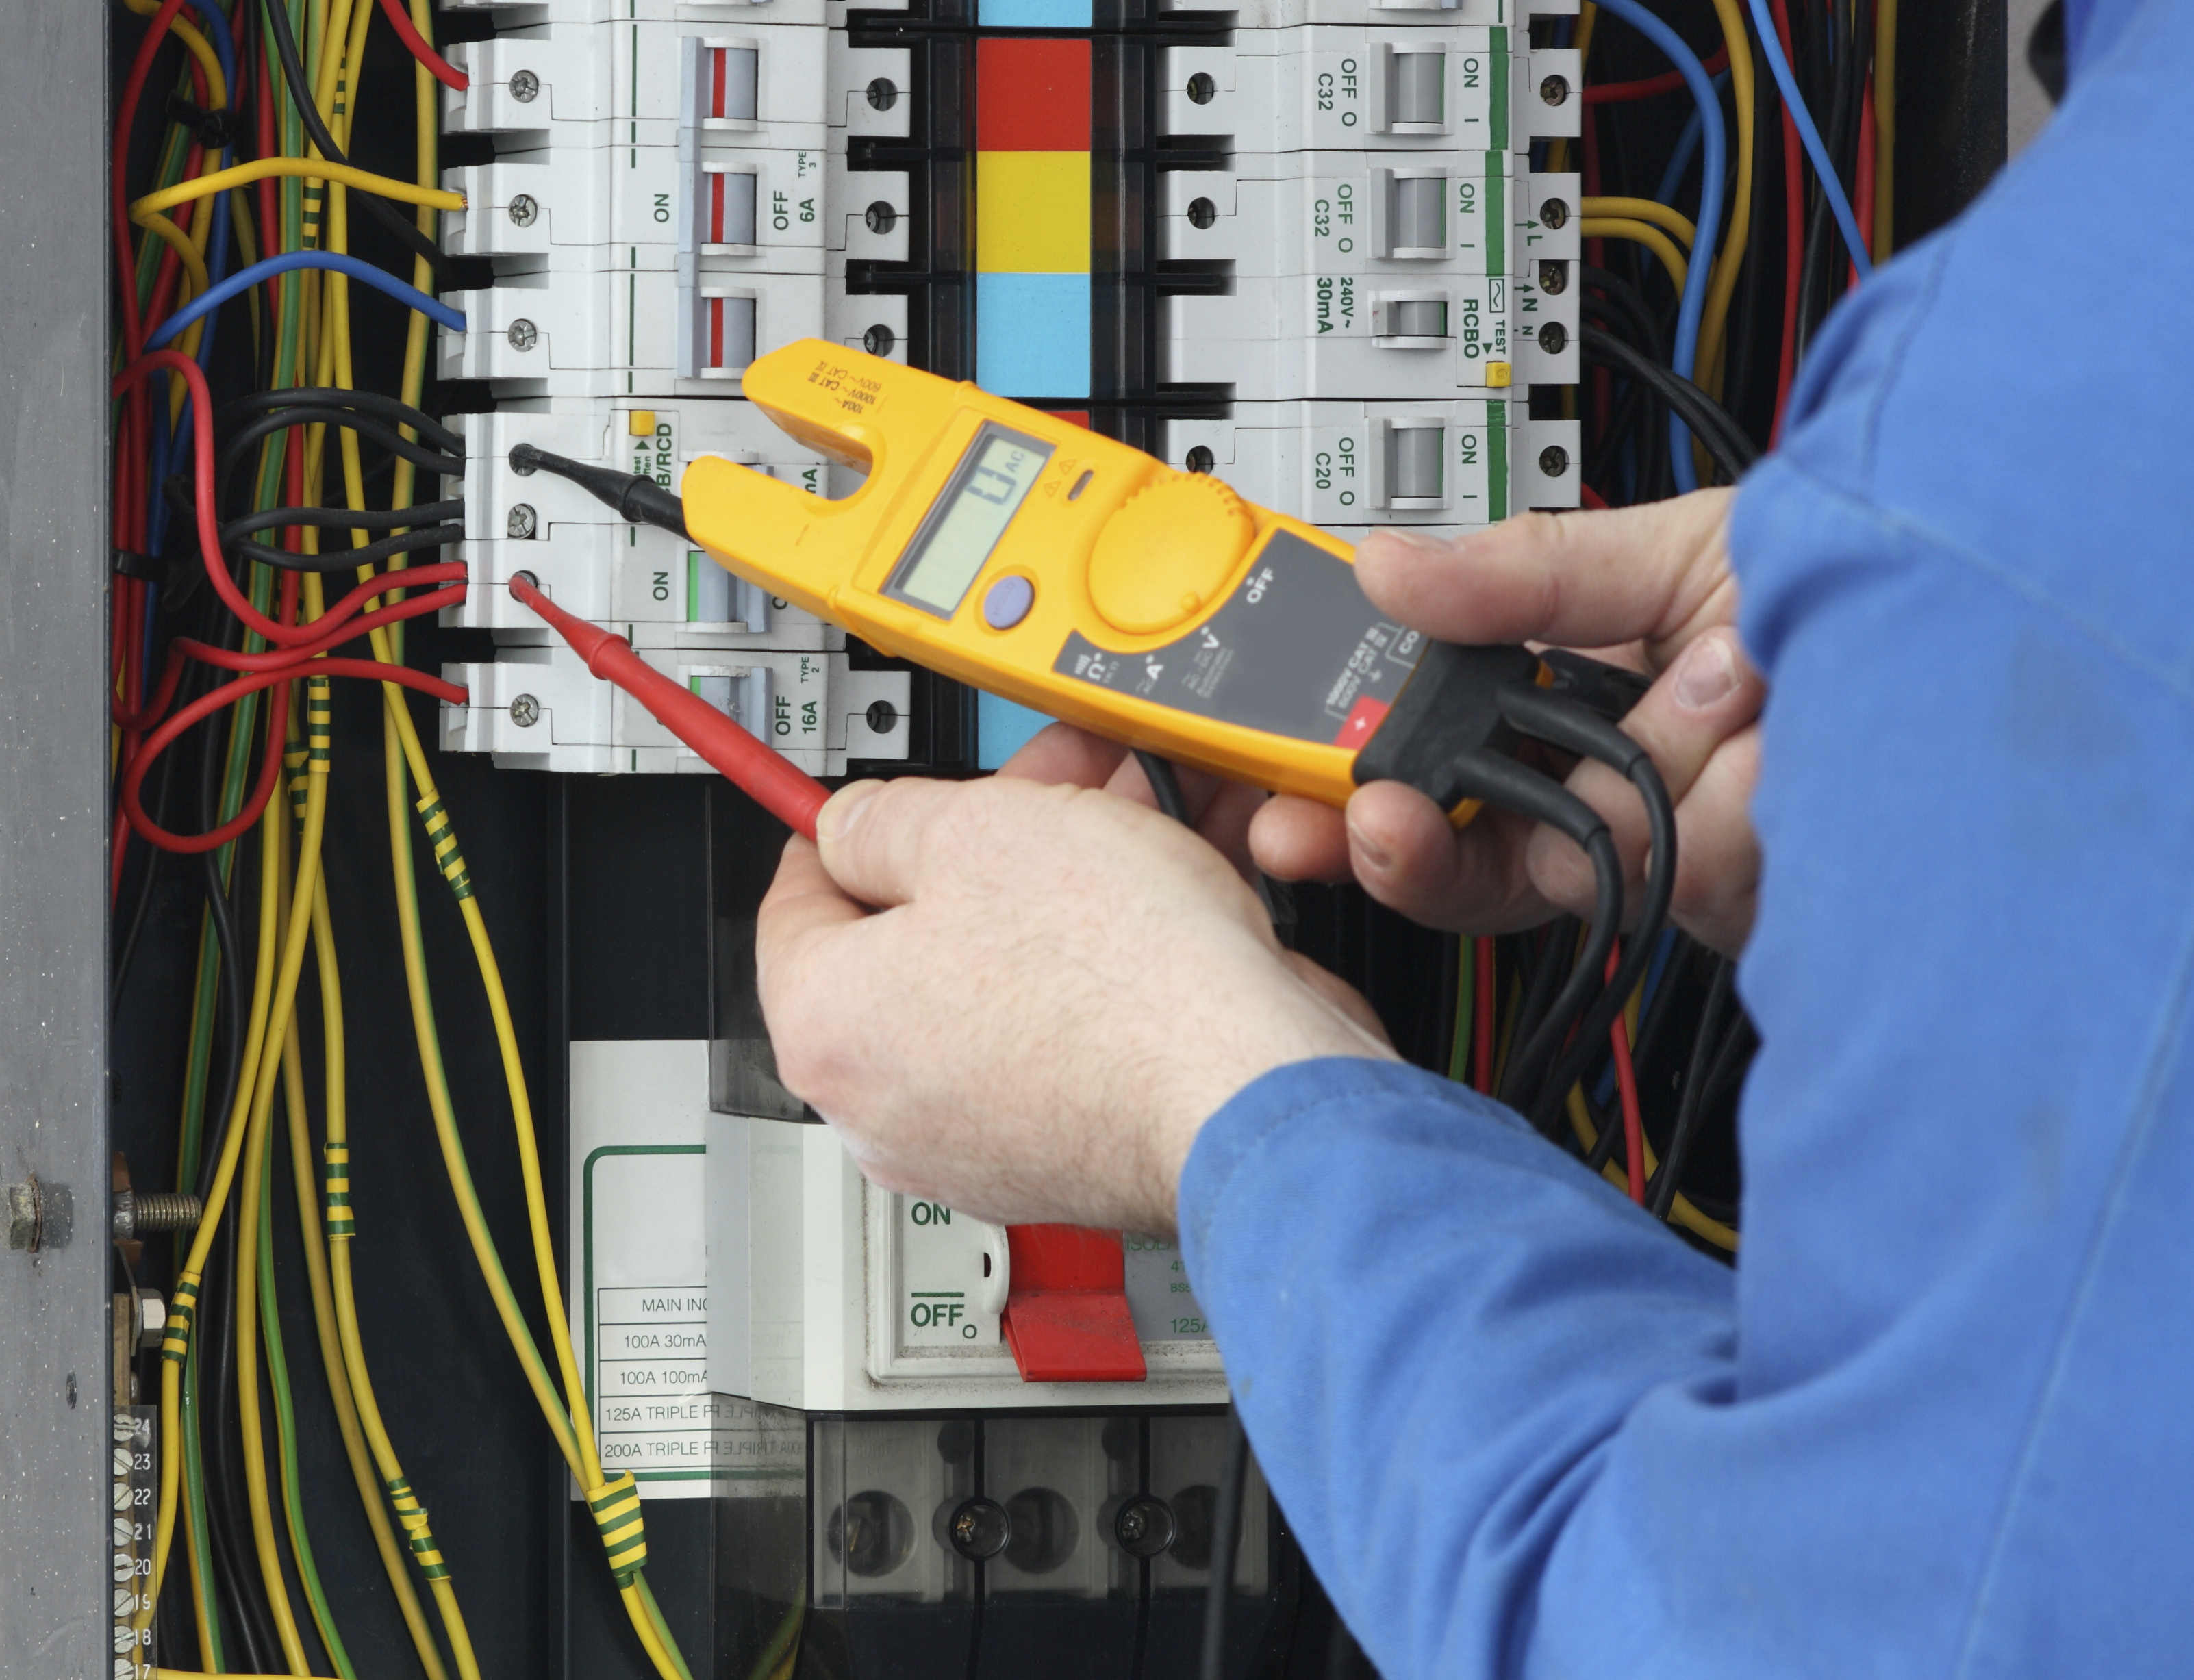 electrical wiring inspections electrical safety inspections excel rh excelelec com bad electrical wiring pictures electrical wiring images hd